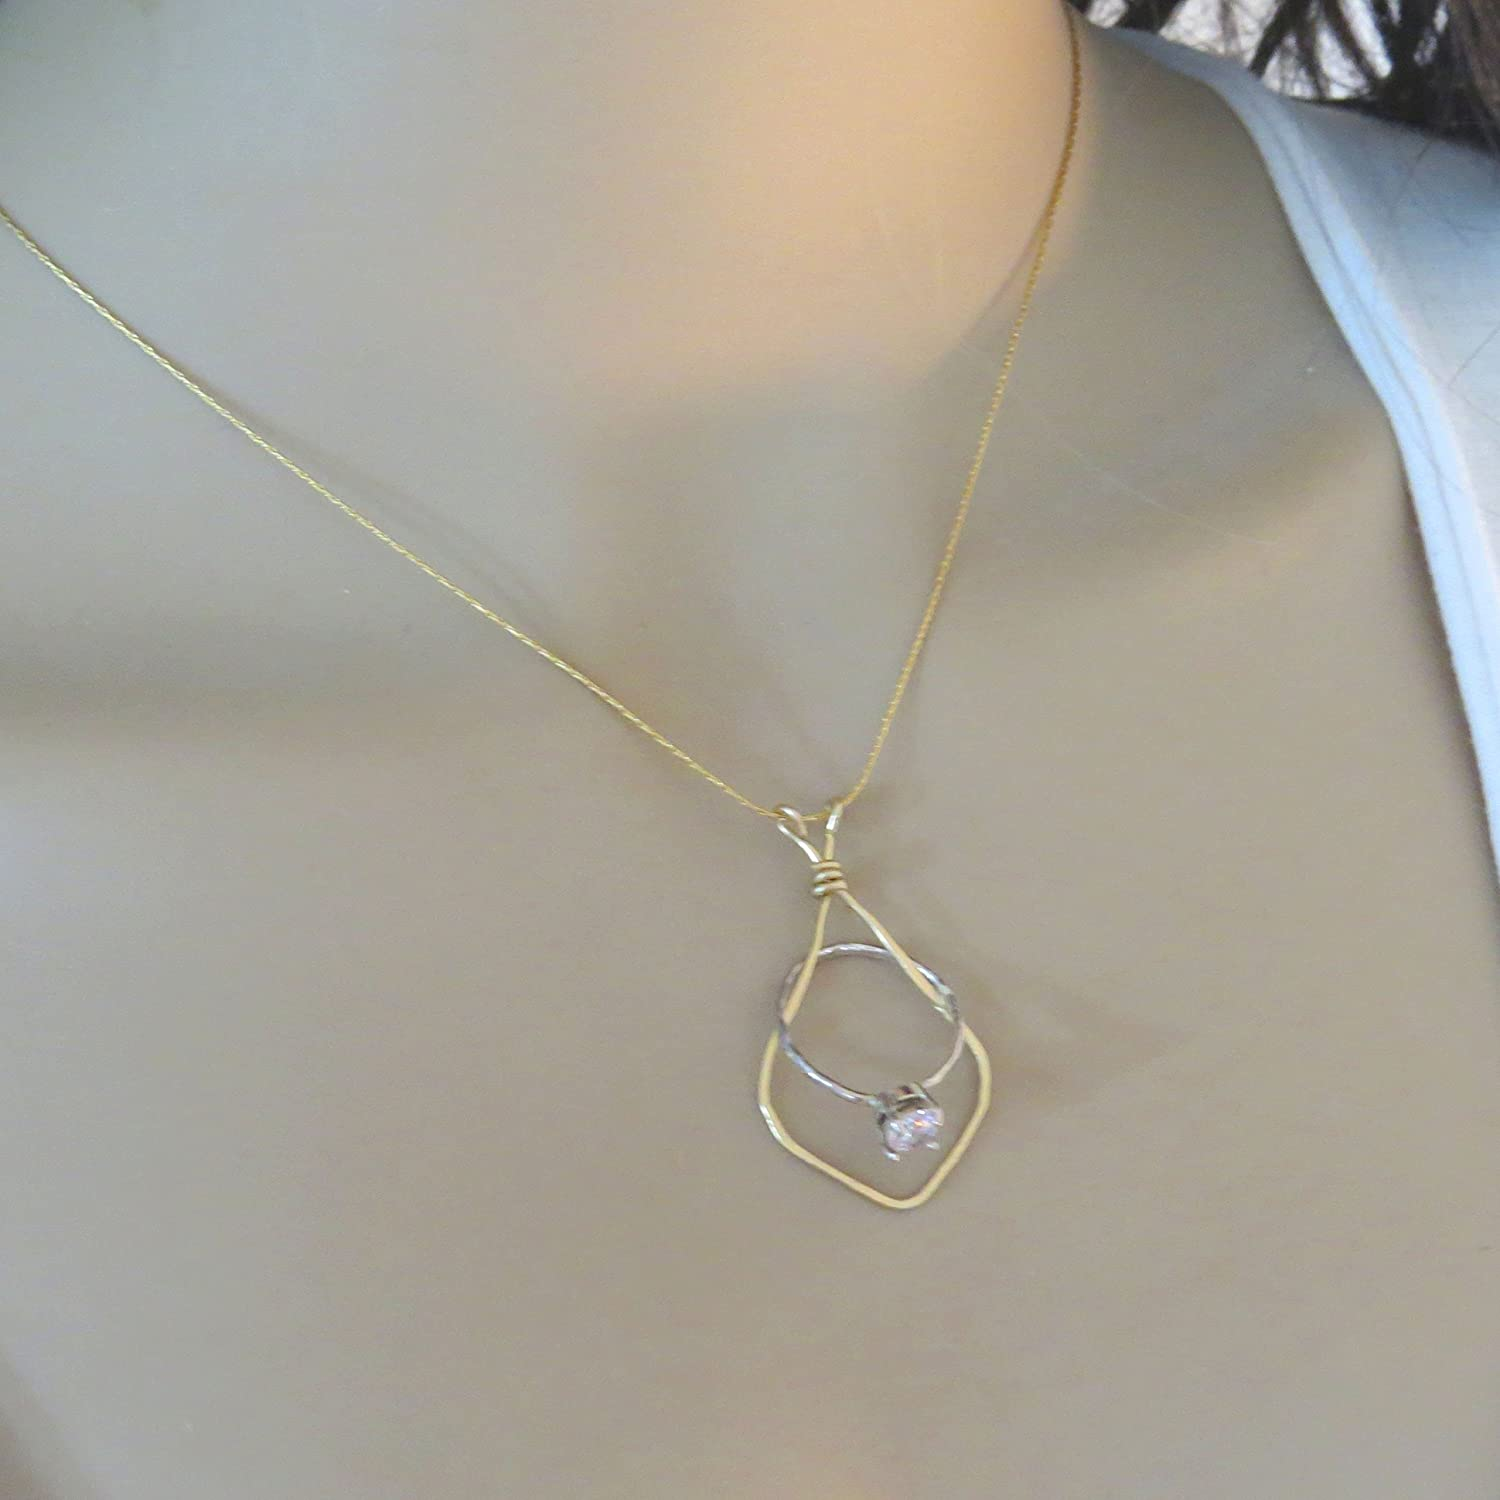 Amazon Com Gold Filled Wedding Ring Holder Necklace 16 5 18 With